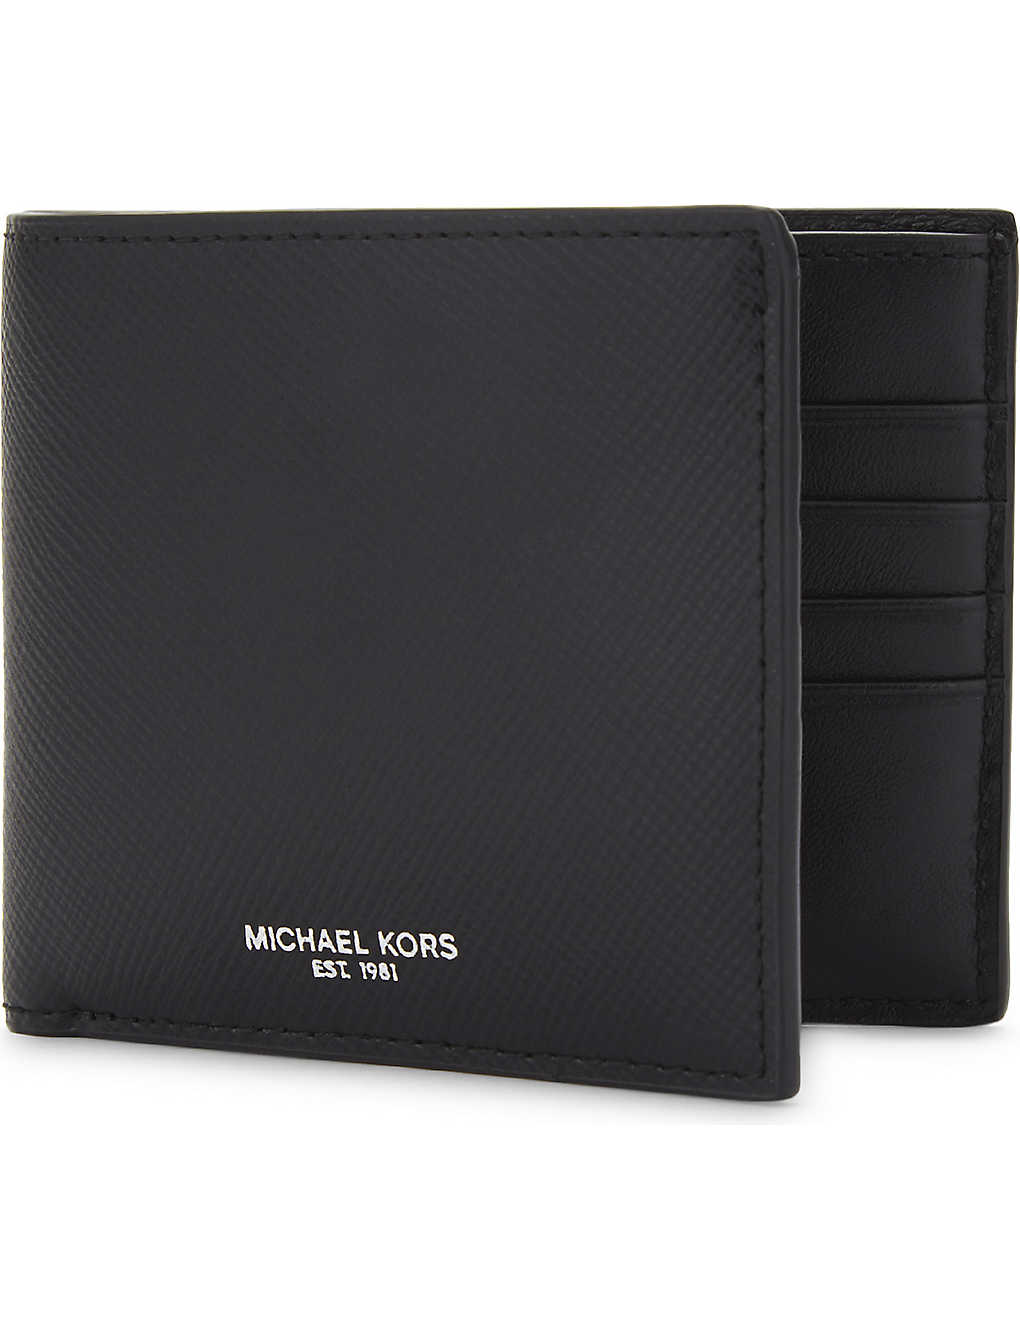 710ca1c4772d MICHAEL KORS - Harrison leather billfold wallet | Selfridges.com